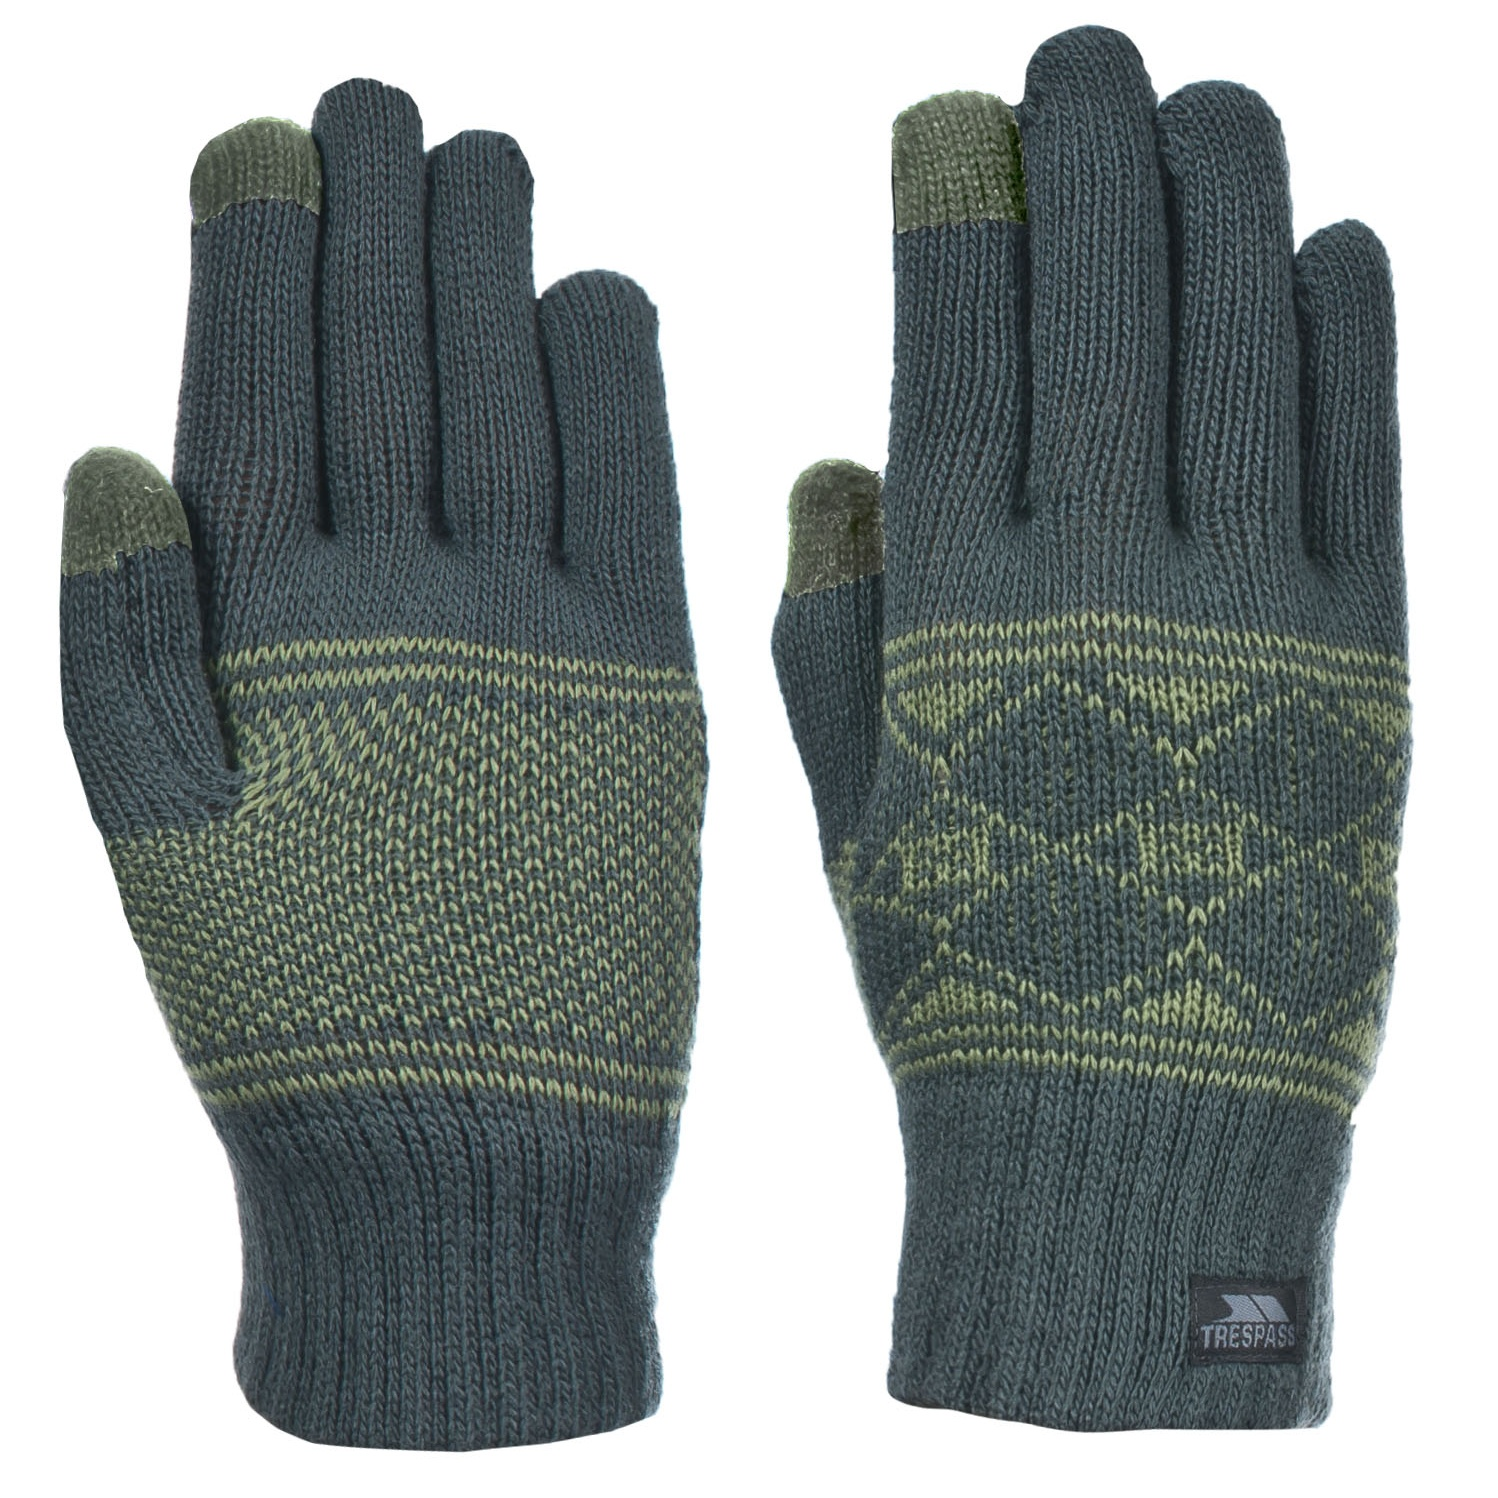 Nike Gloves Touch Screen: Trespass Mens Howard Touch Screen Compatible Knitted